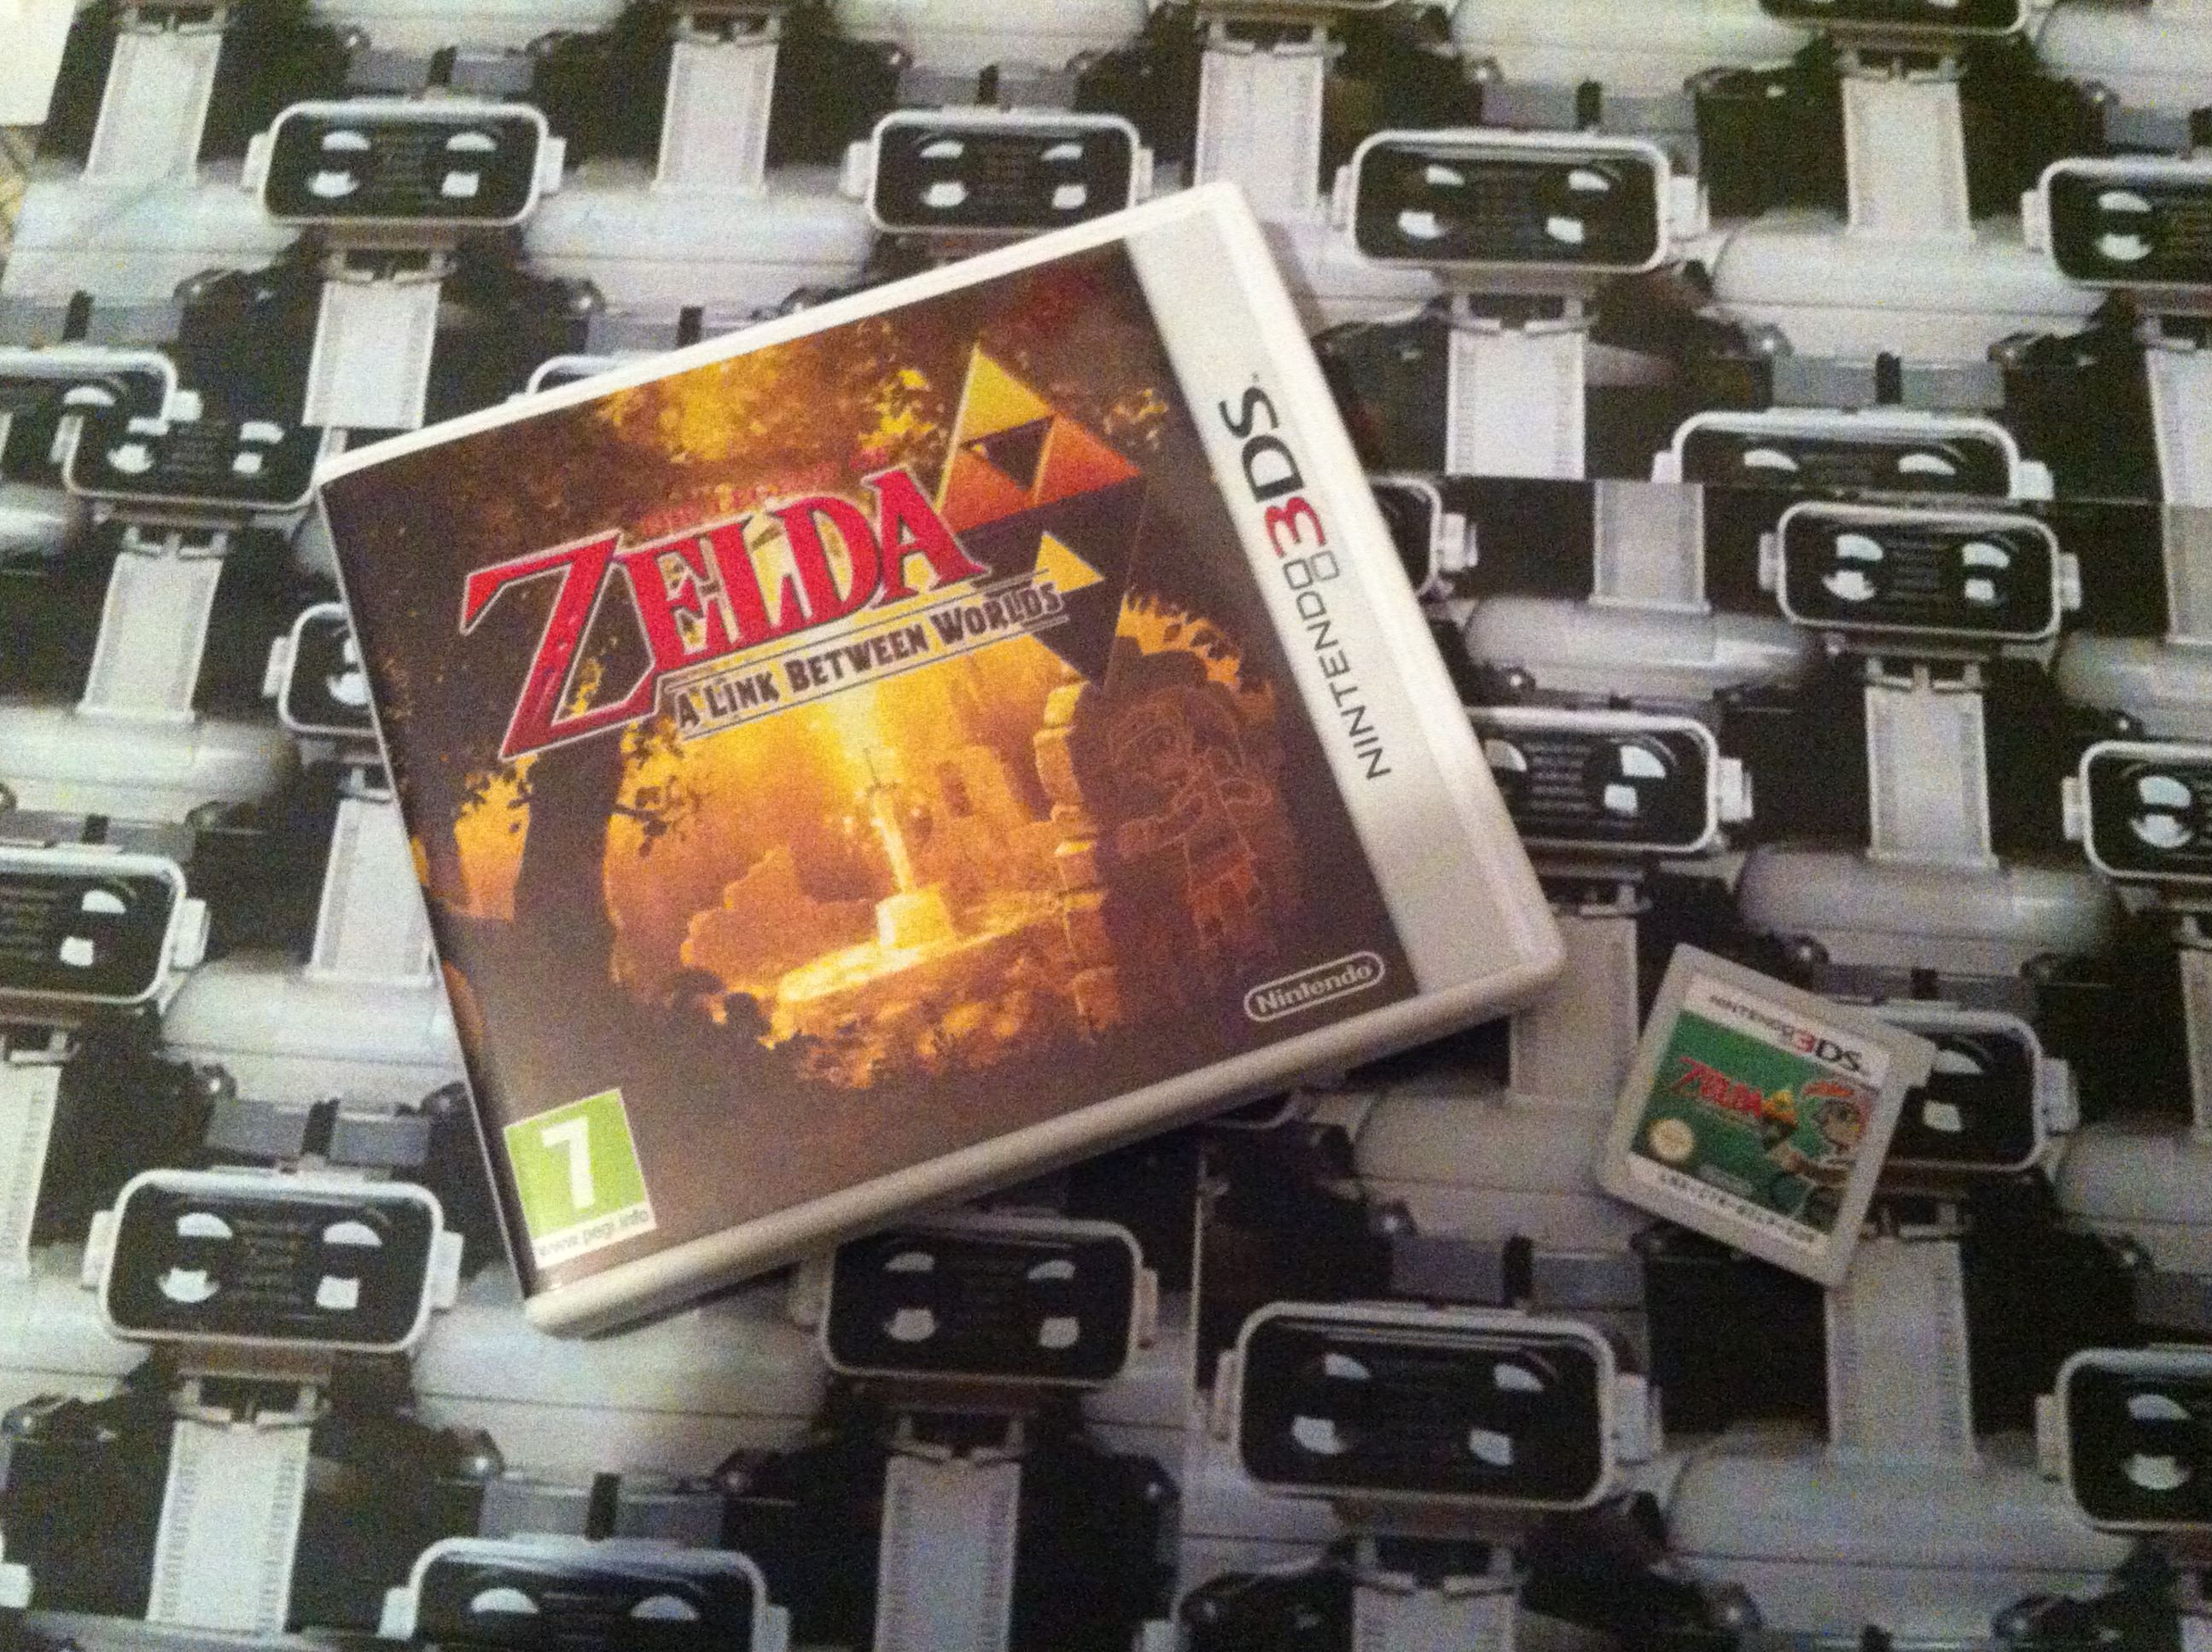 www.nintendo-collection.com - Nintendo 3DS Game Jeux Zelda A Link Between Worlds